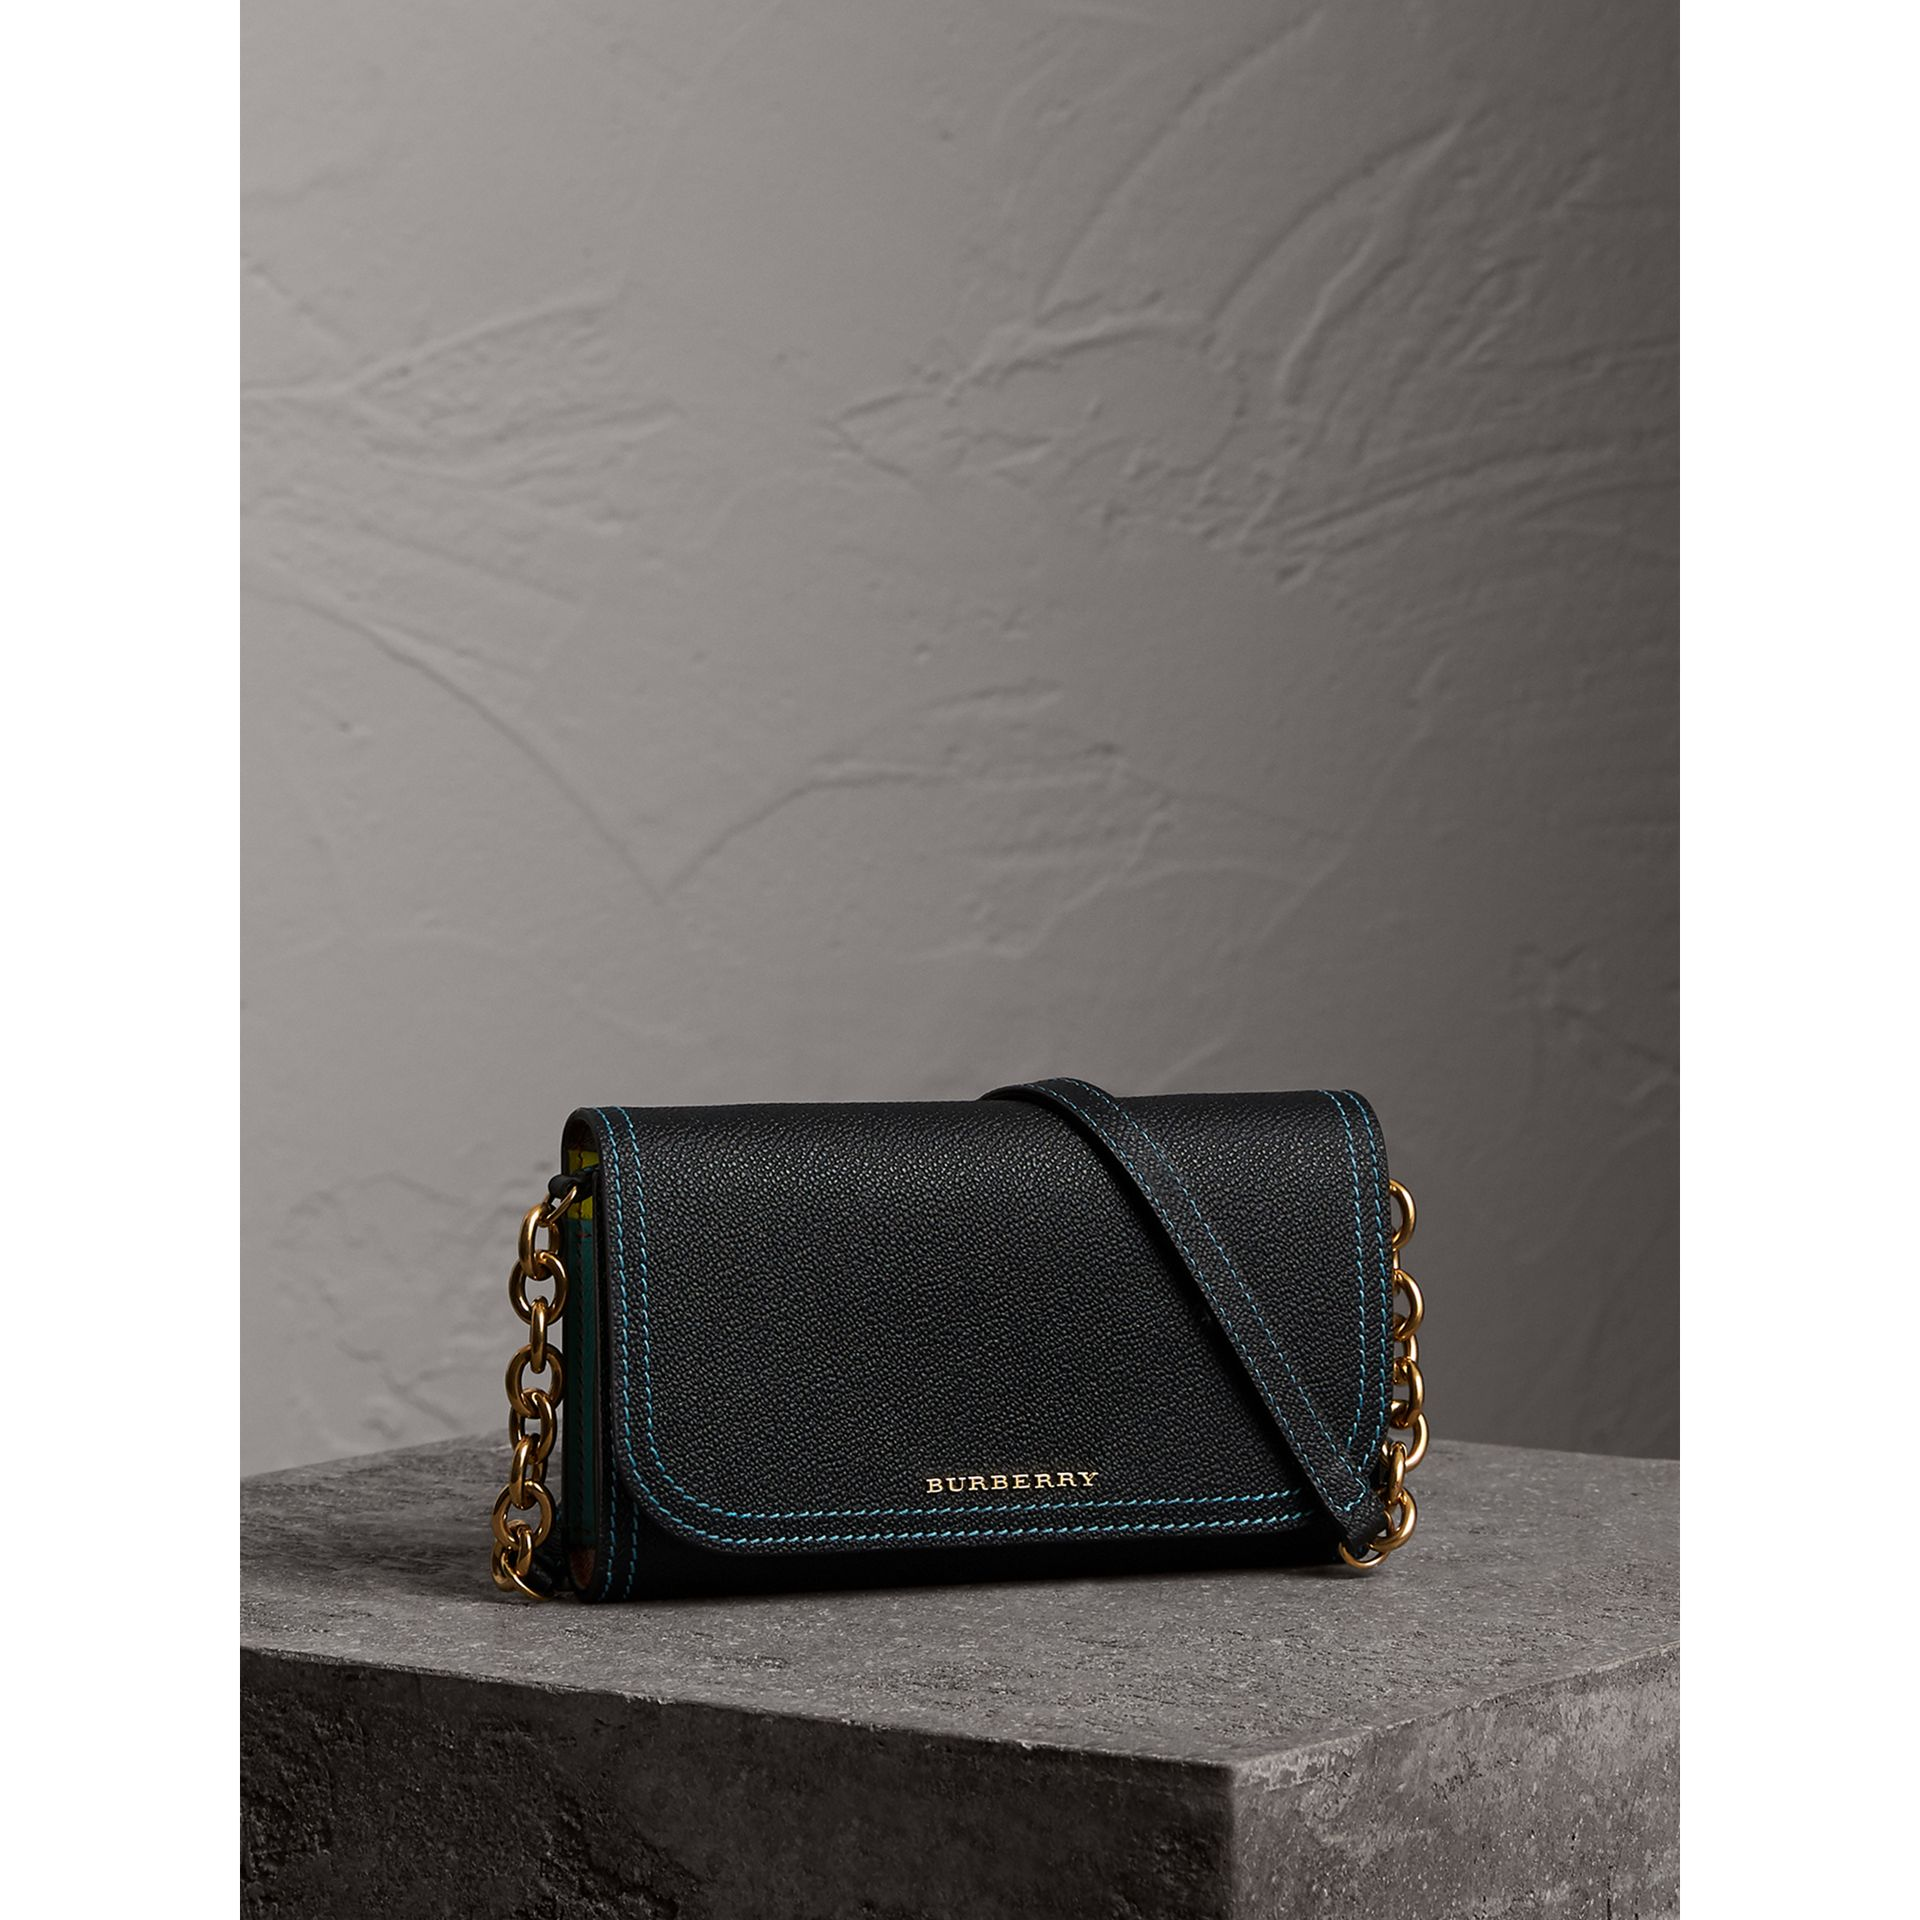 Topstitch Detail Leather Wallet with Detachable Strap in Black/multicolour - Women | Burberry United Kingdom - gallery image 1